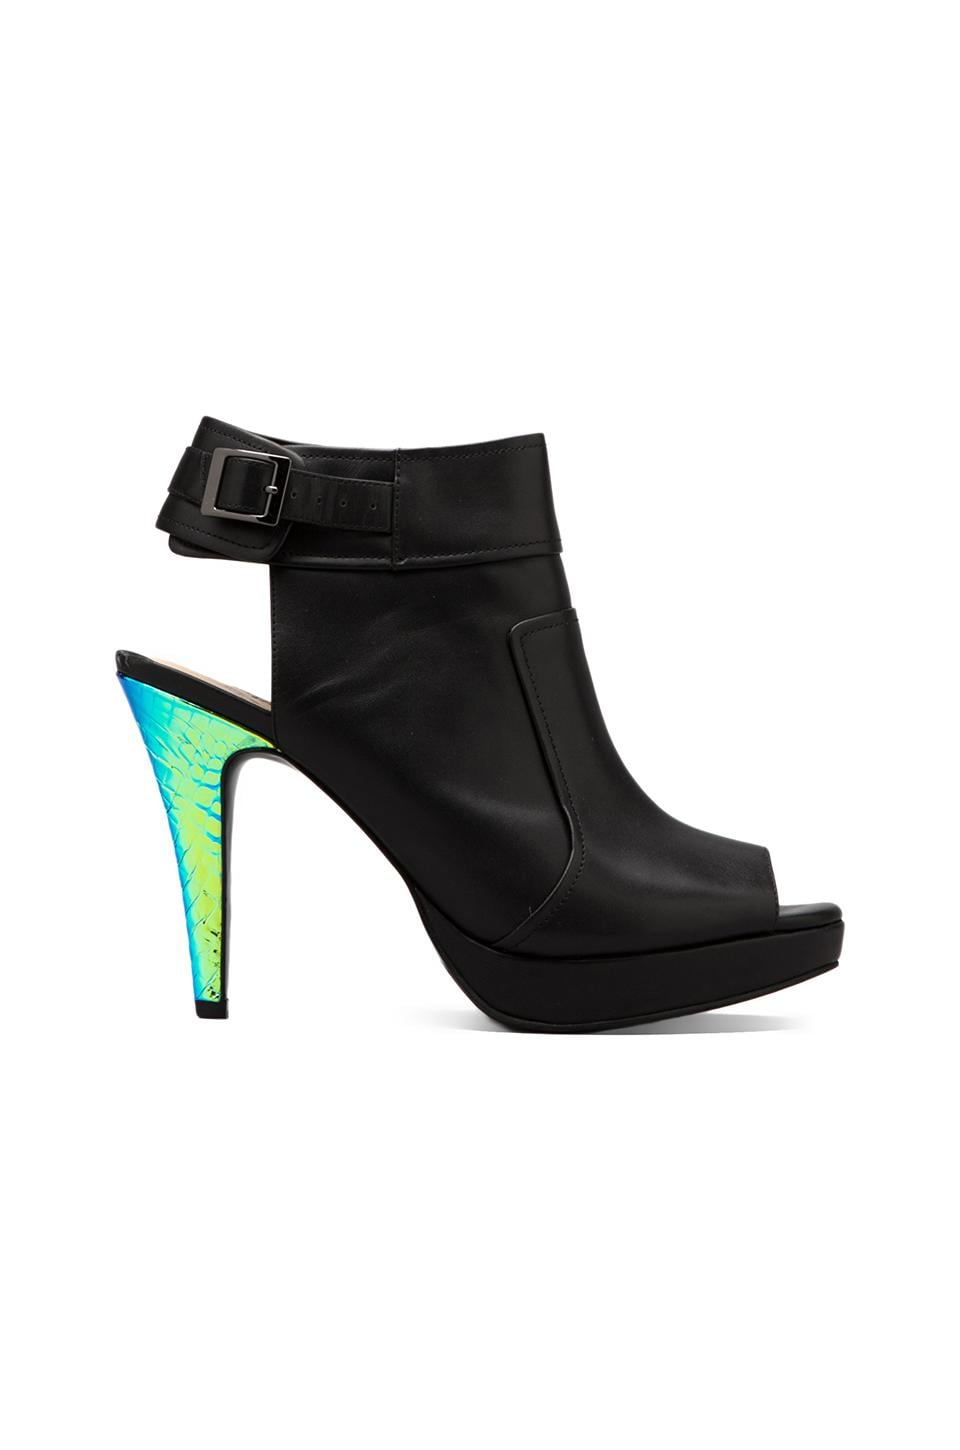 Nanette Lepore Manhunter Heel in Black